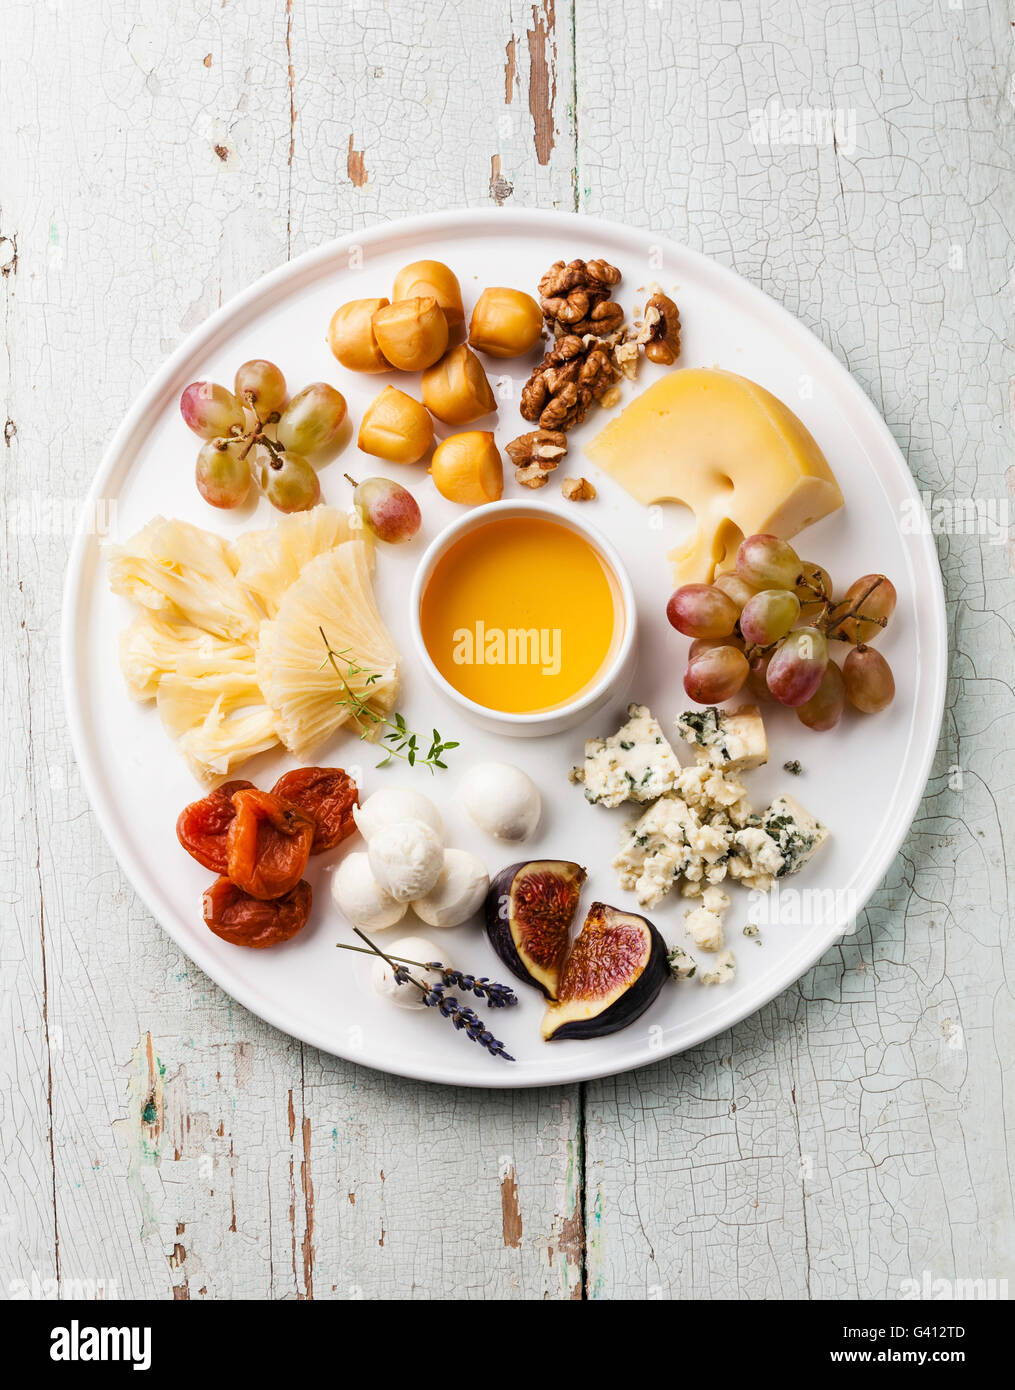 Cheese plate Snacks assortment with honey on white plate - Stock Image